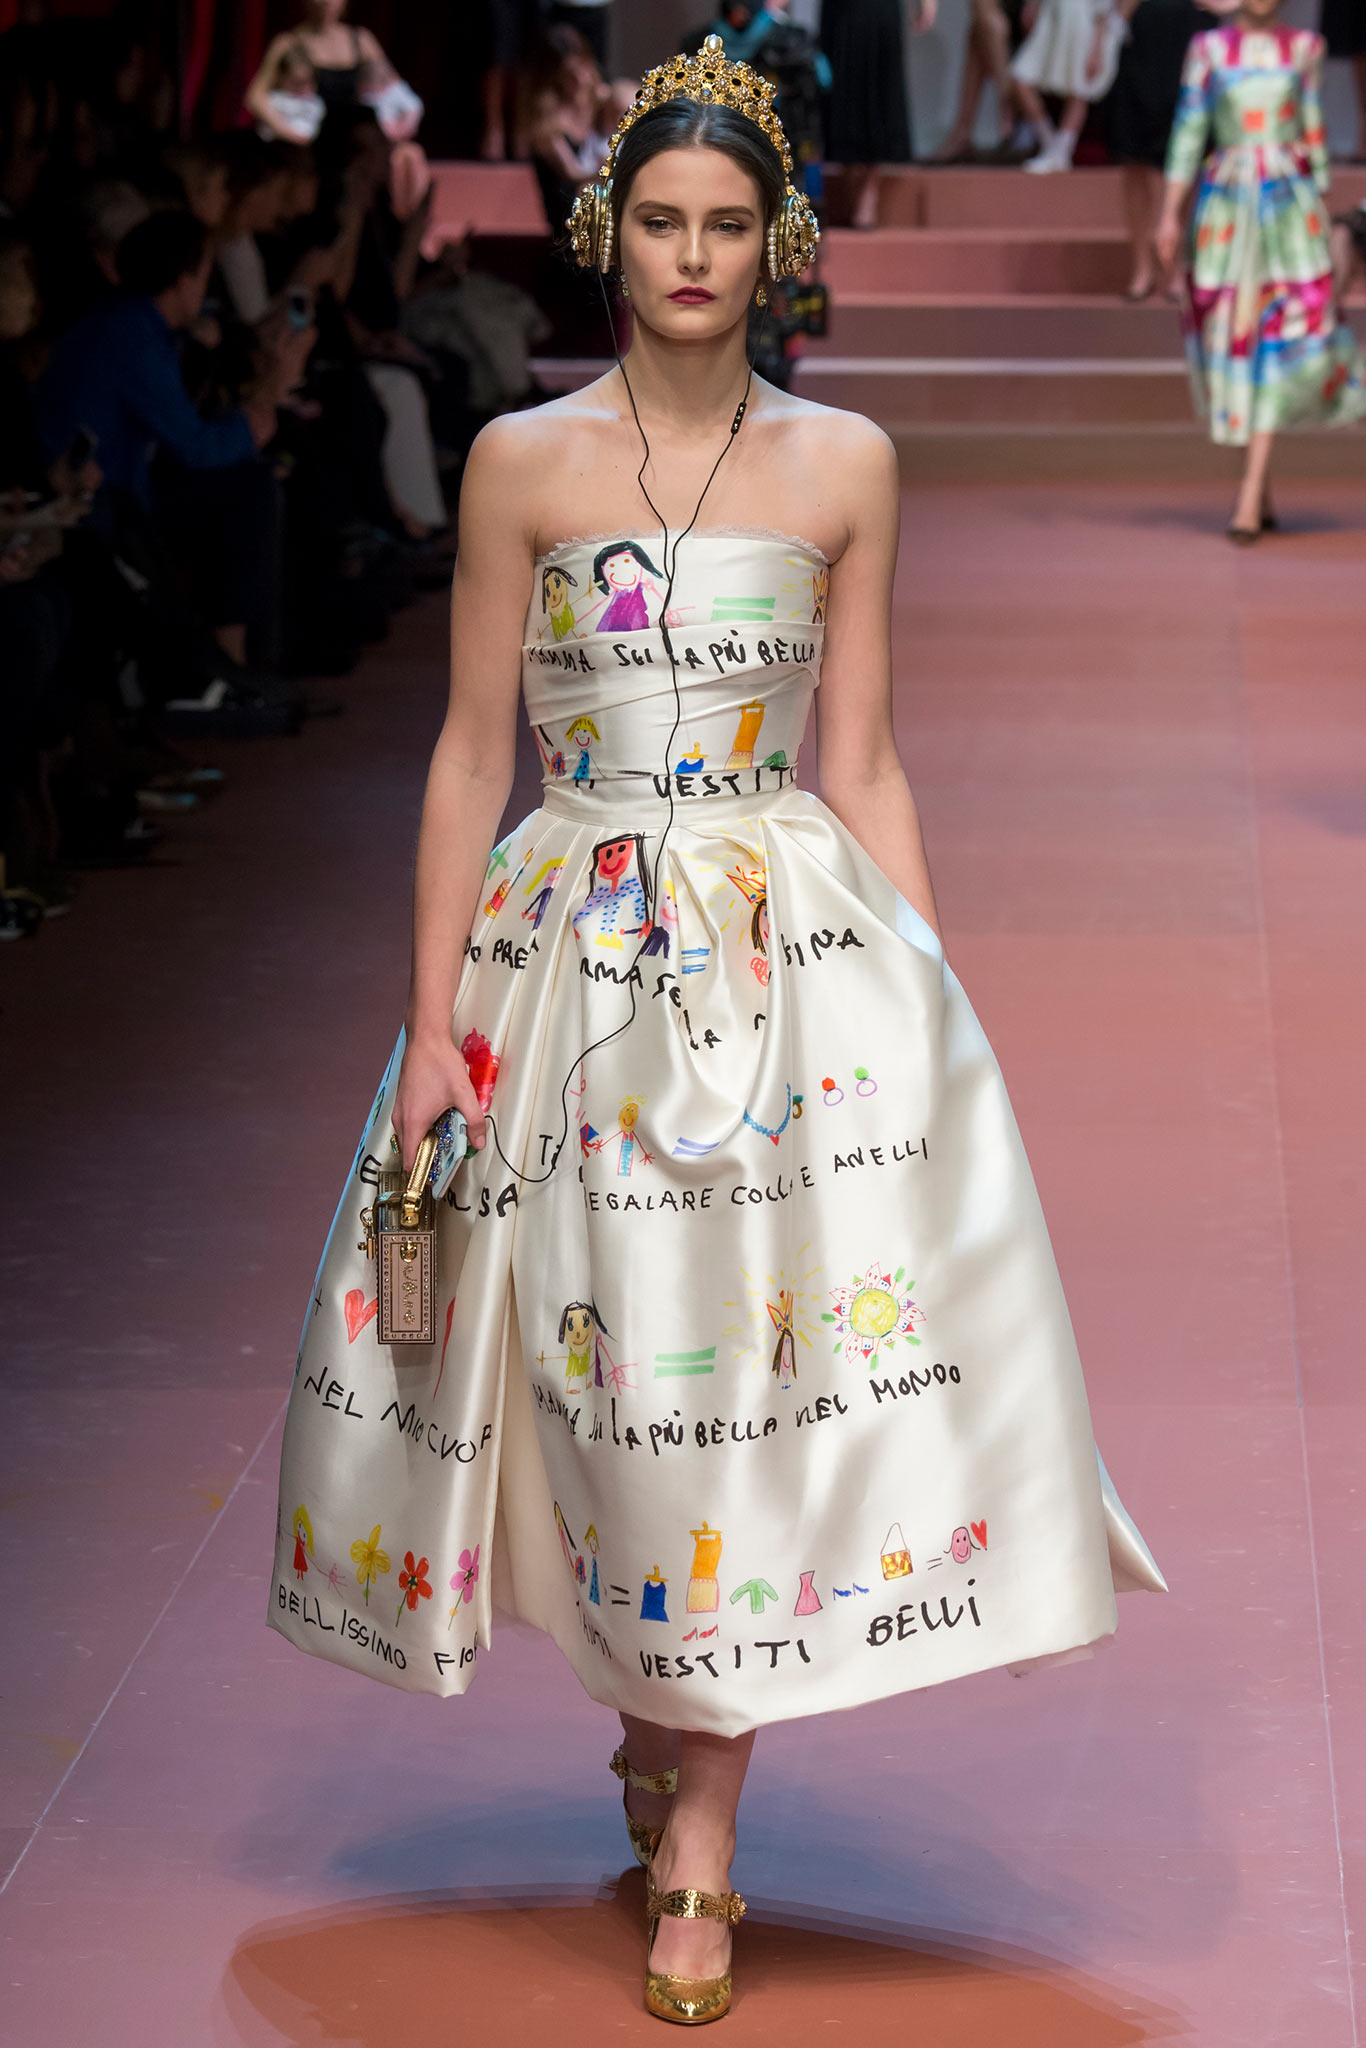 4d336e9e8f So, Dolce & Gabbana dedicated their show to mothers during Milan Fashion  Week. They also featured a dress with children's drawings and the most  gorgeous ...